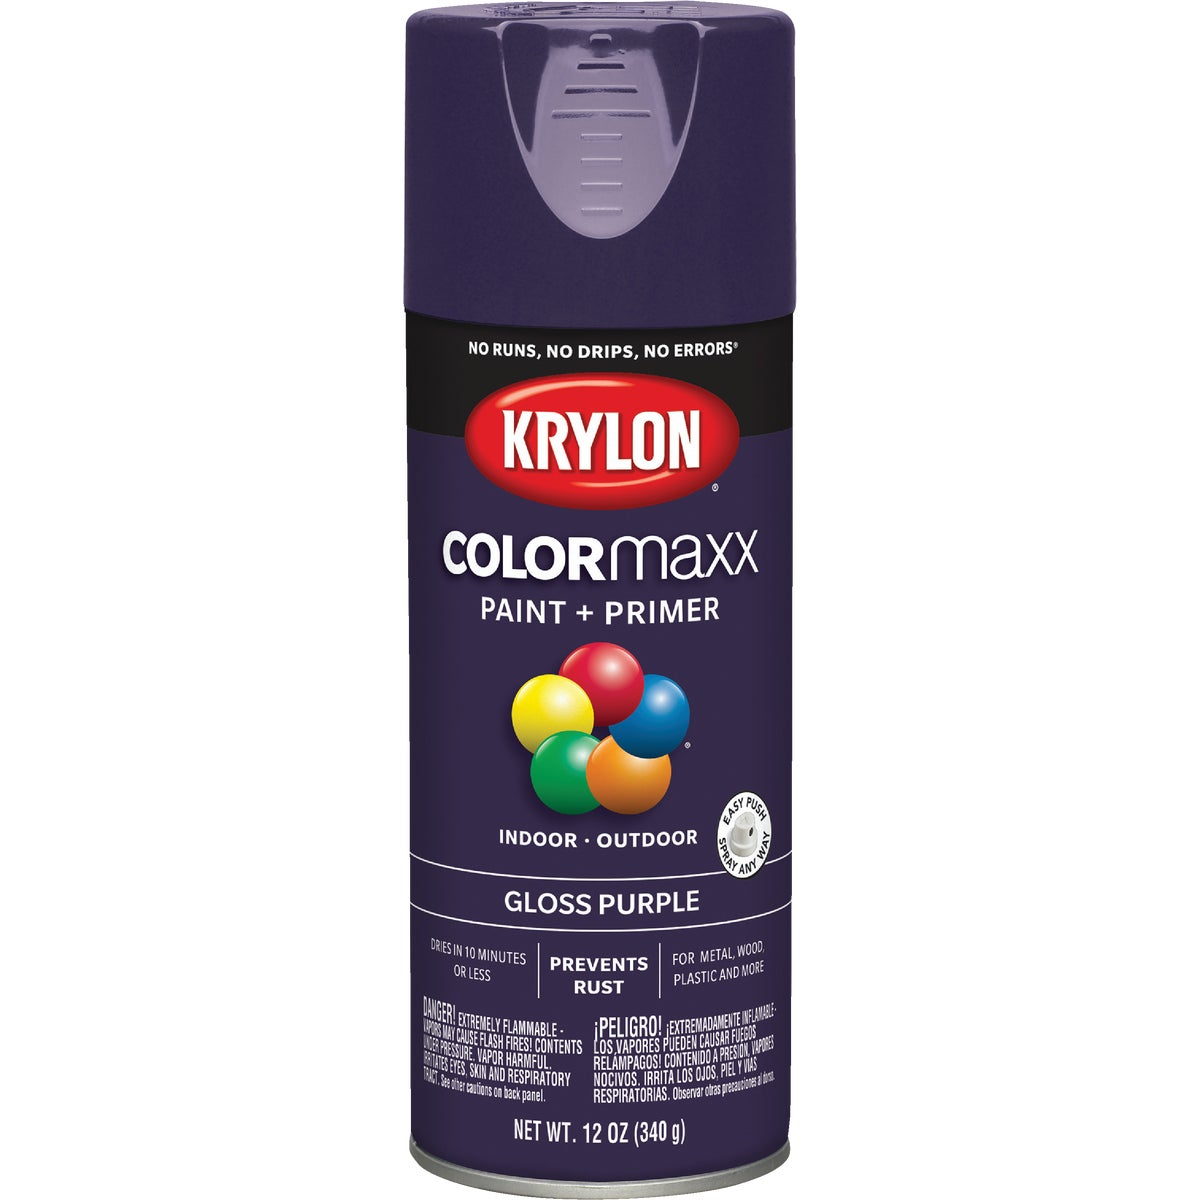 GLOSS PURPLE SPRAY PAINT - 51913 by Krylon/consumer Div